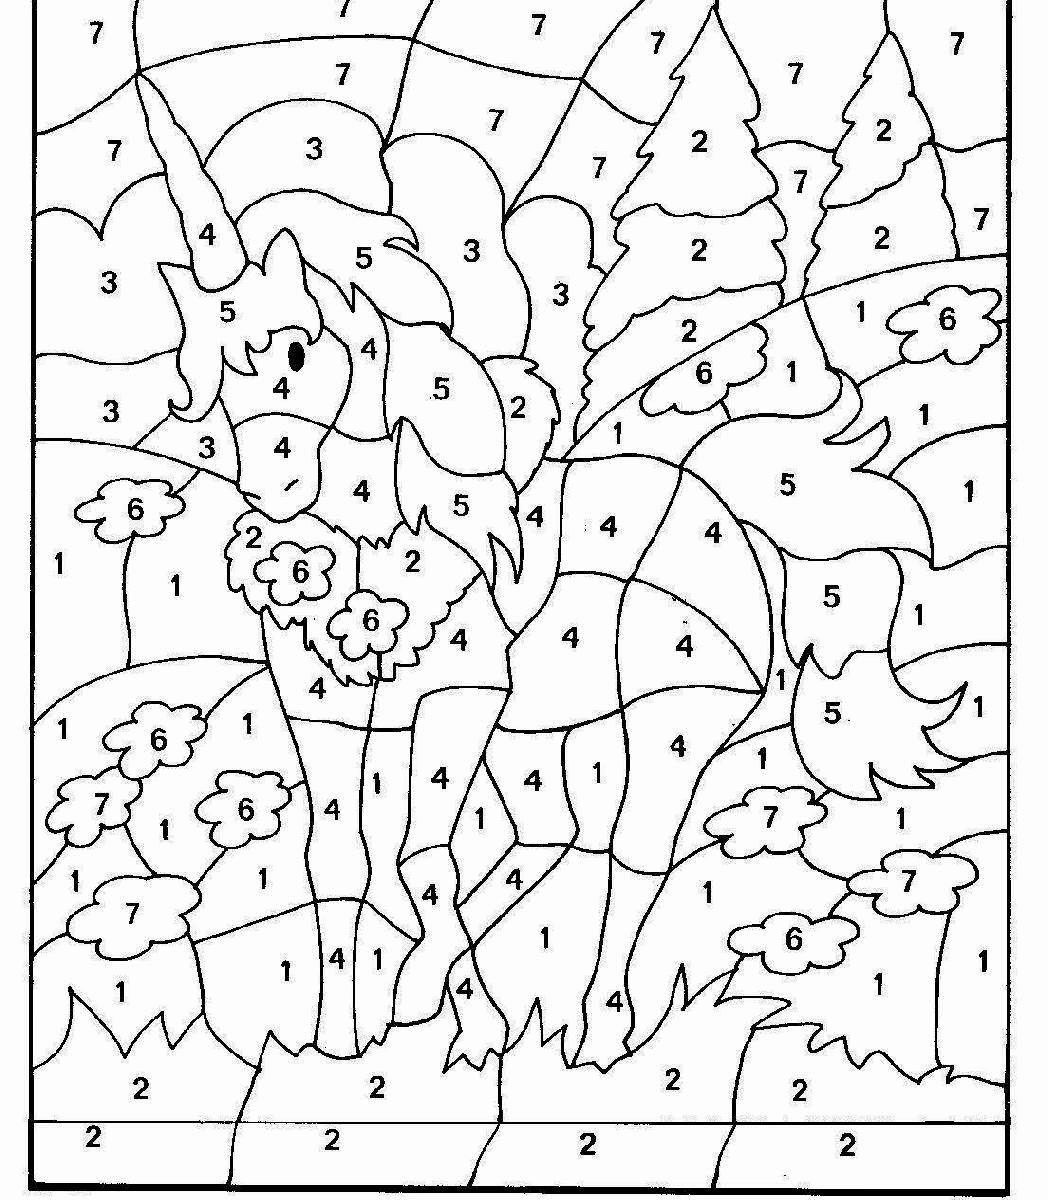 Coloring : Coloring Book Freeplication Worksheets Pages